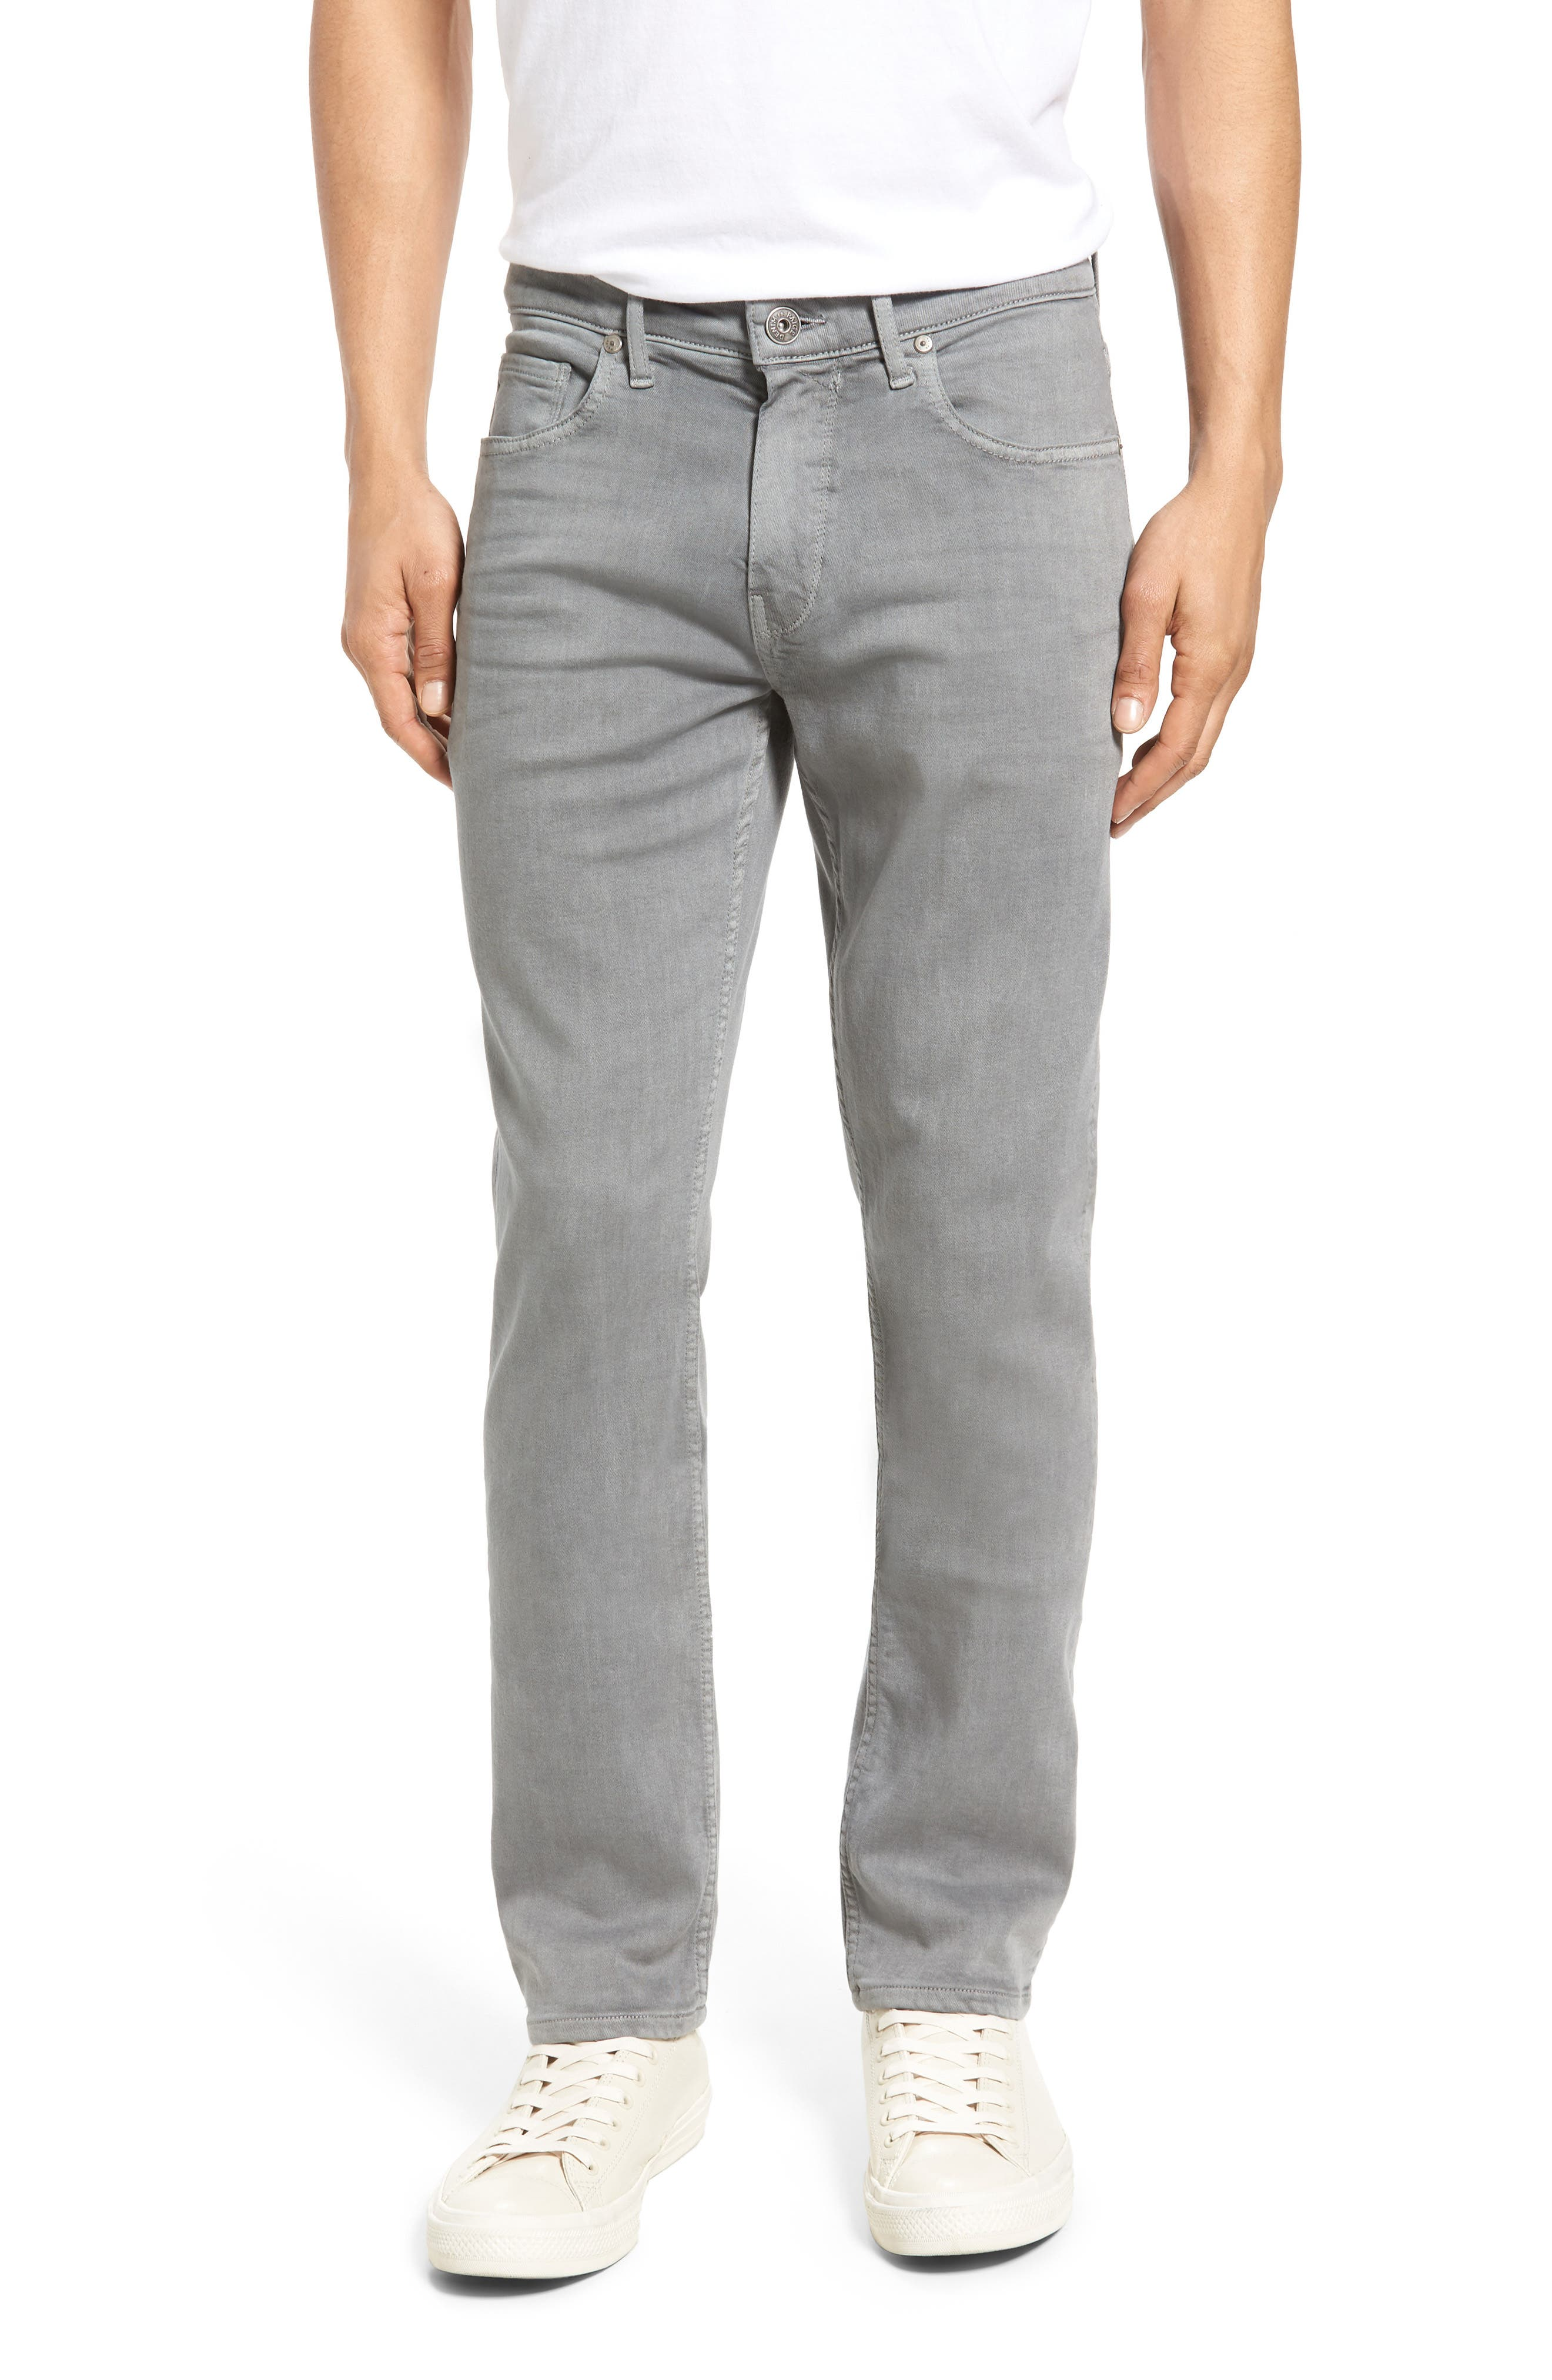 Transcend - Lennox Slim Fit Jeans,                             Main thumbnail 1, color,                             020